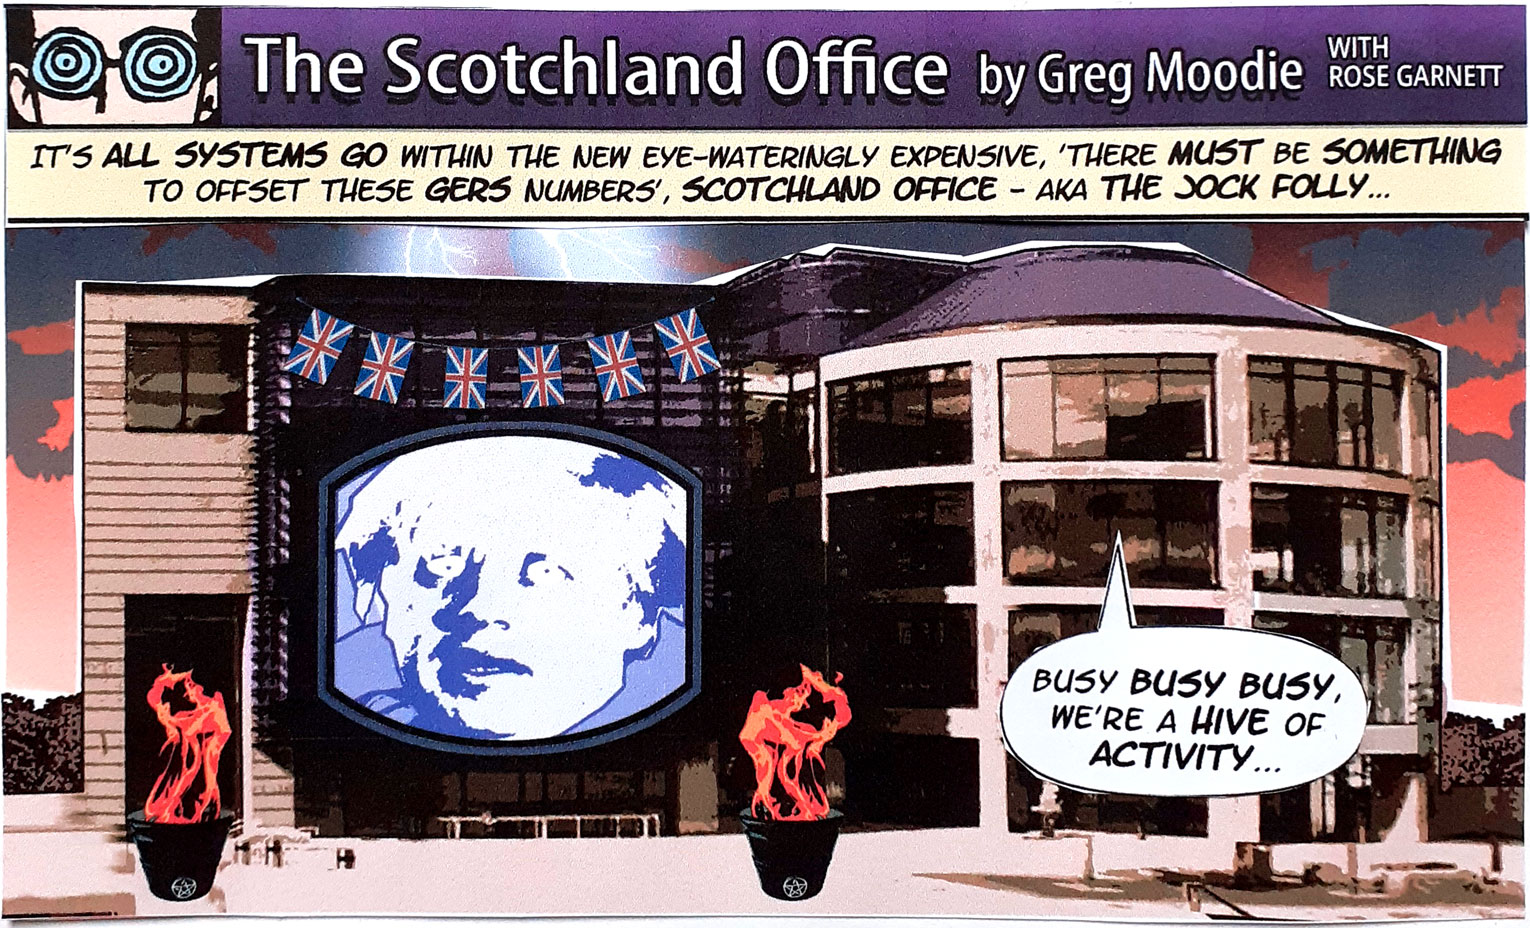 The Scotchland Office